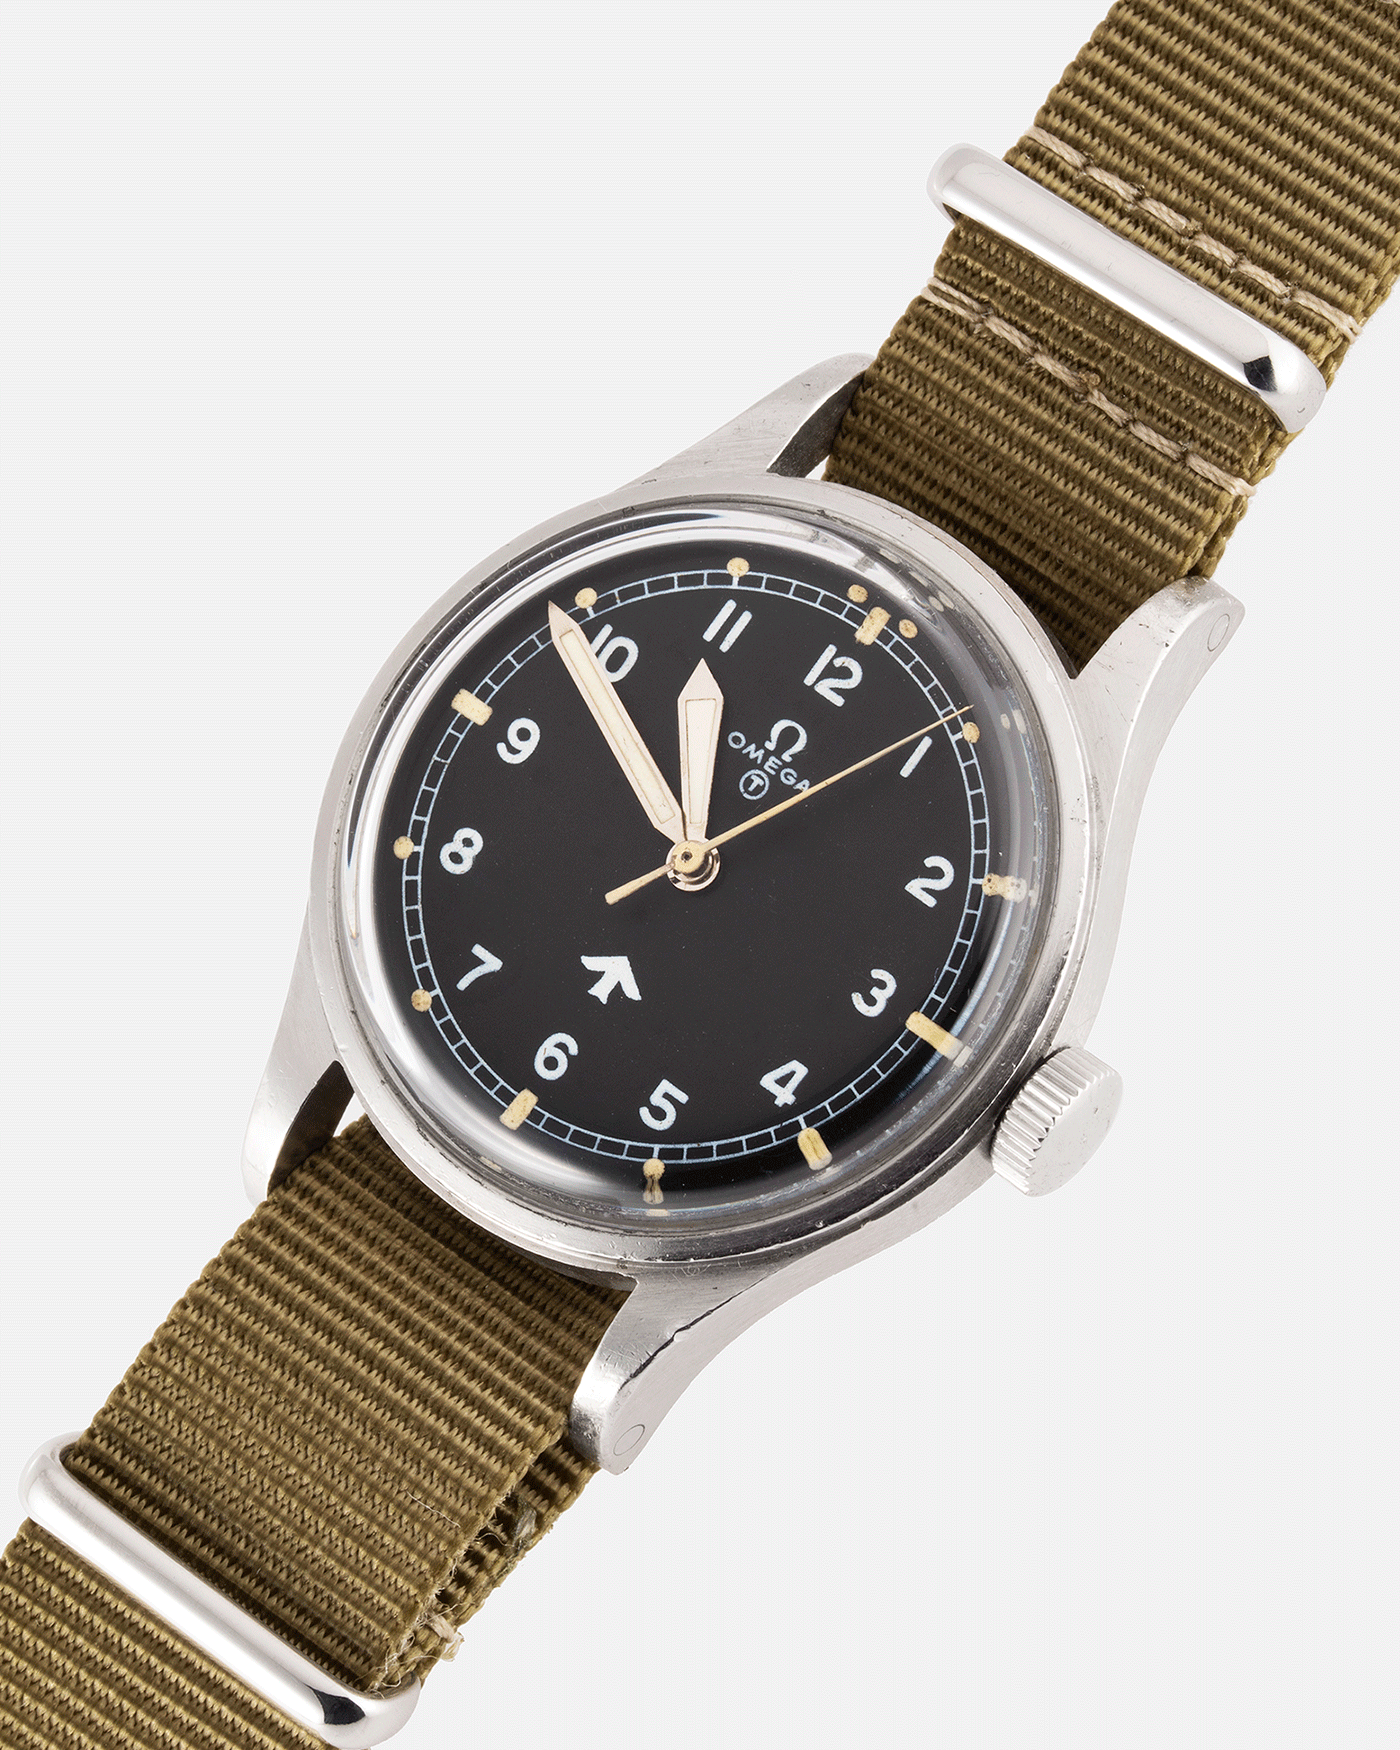 Brand: Omega Year: 1953 Model: Fat Arrow 53 Reference Number: CK 2777-1 Material: Stainless Steel Movement: 'Specially Adjusted' Cal. 283 Case Diameter: 37mm Lug Width: 18mm Bracelet/Strap: Green Fabric NATO